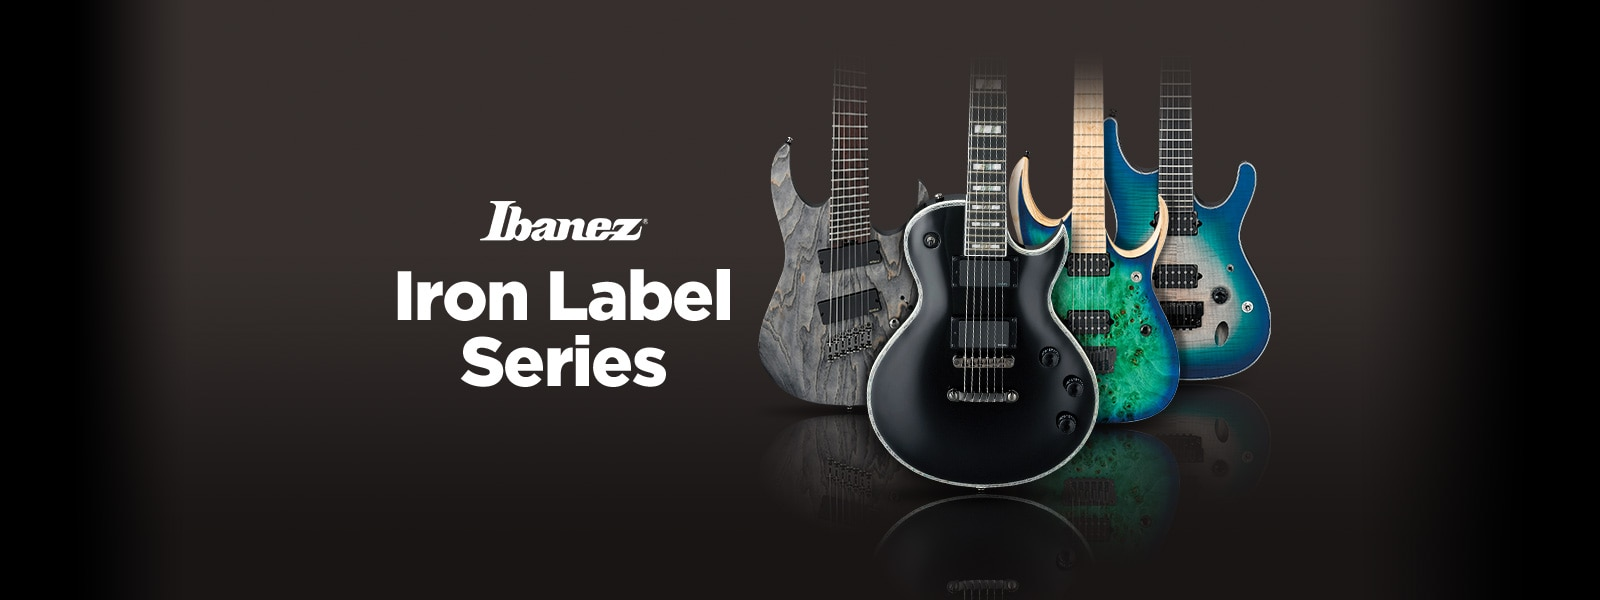 Ibanez Iron Label Guitars